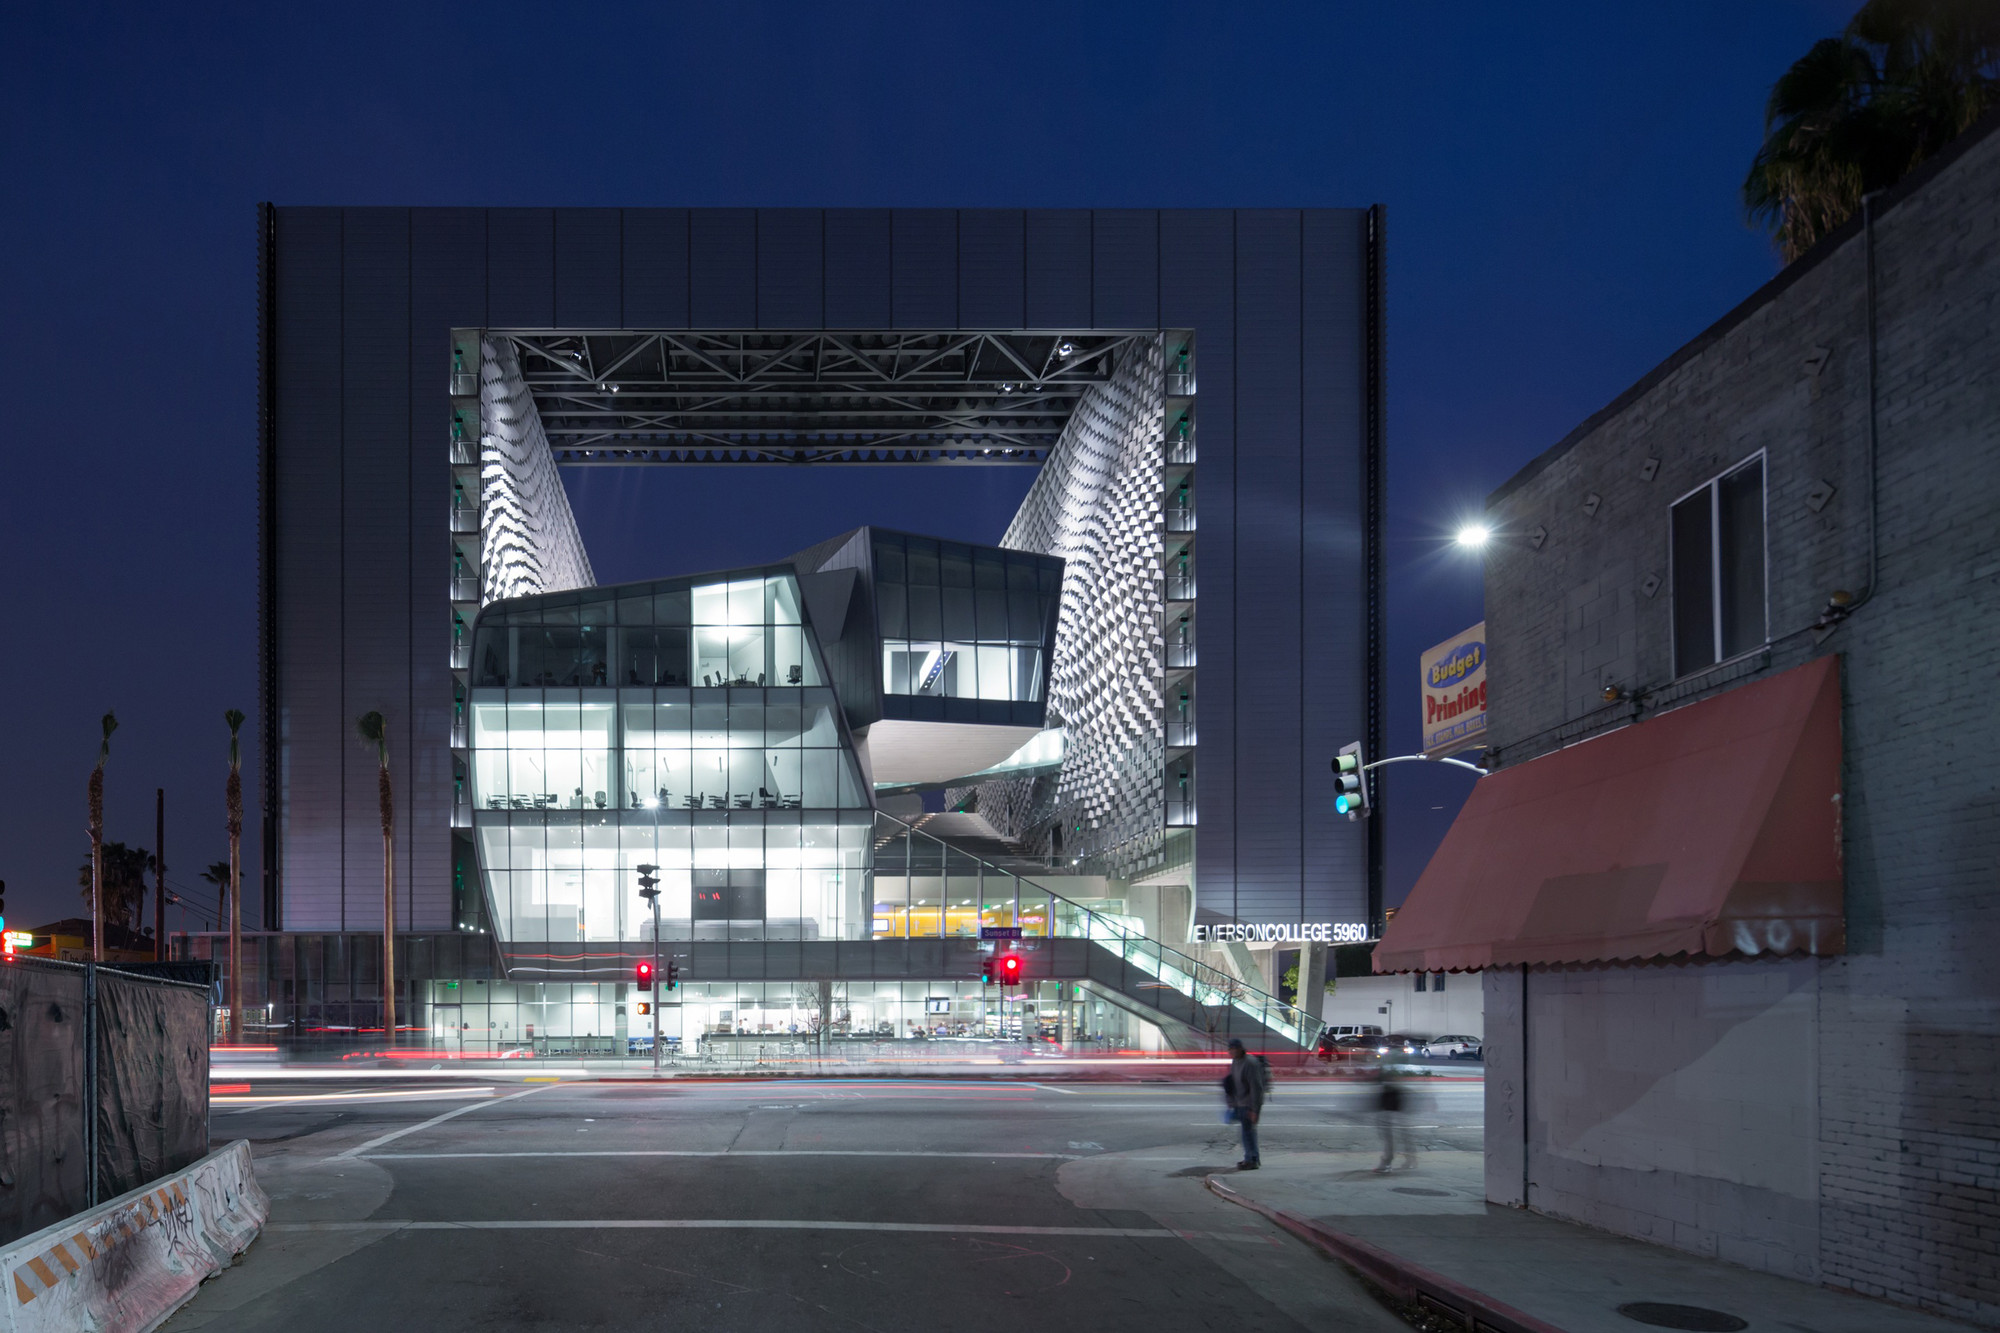 Emerson college los angeles morphosis architects archdaily for Design consultancy los angeles